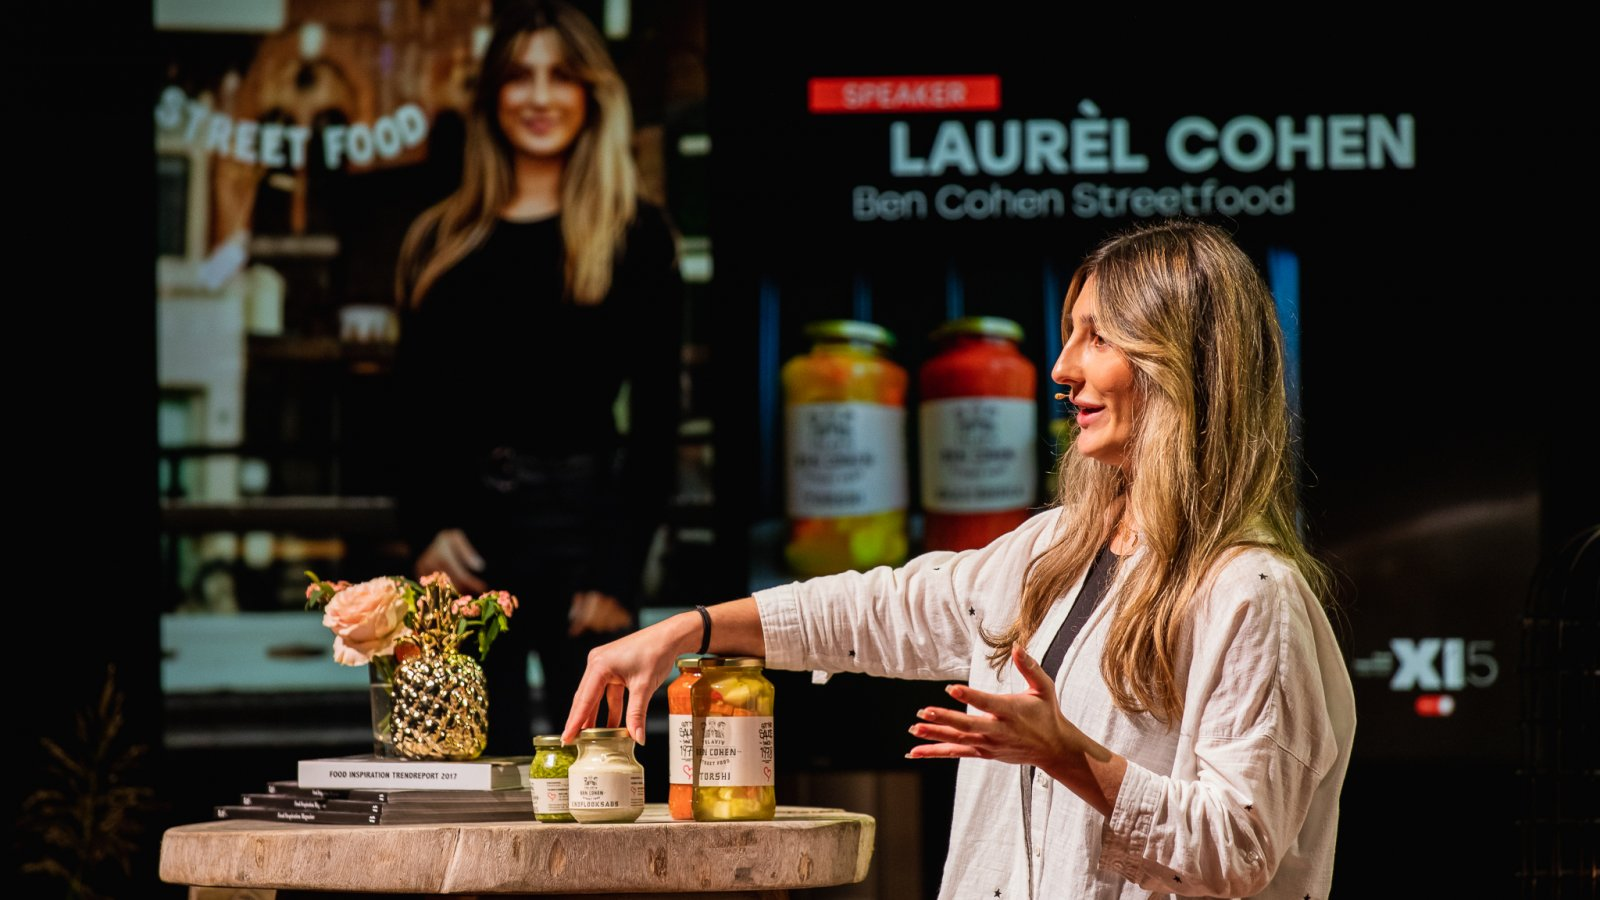 Laurel Cohen Food Inspiration Days foto Floris Heuer